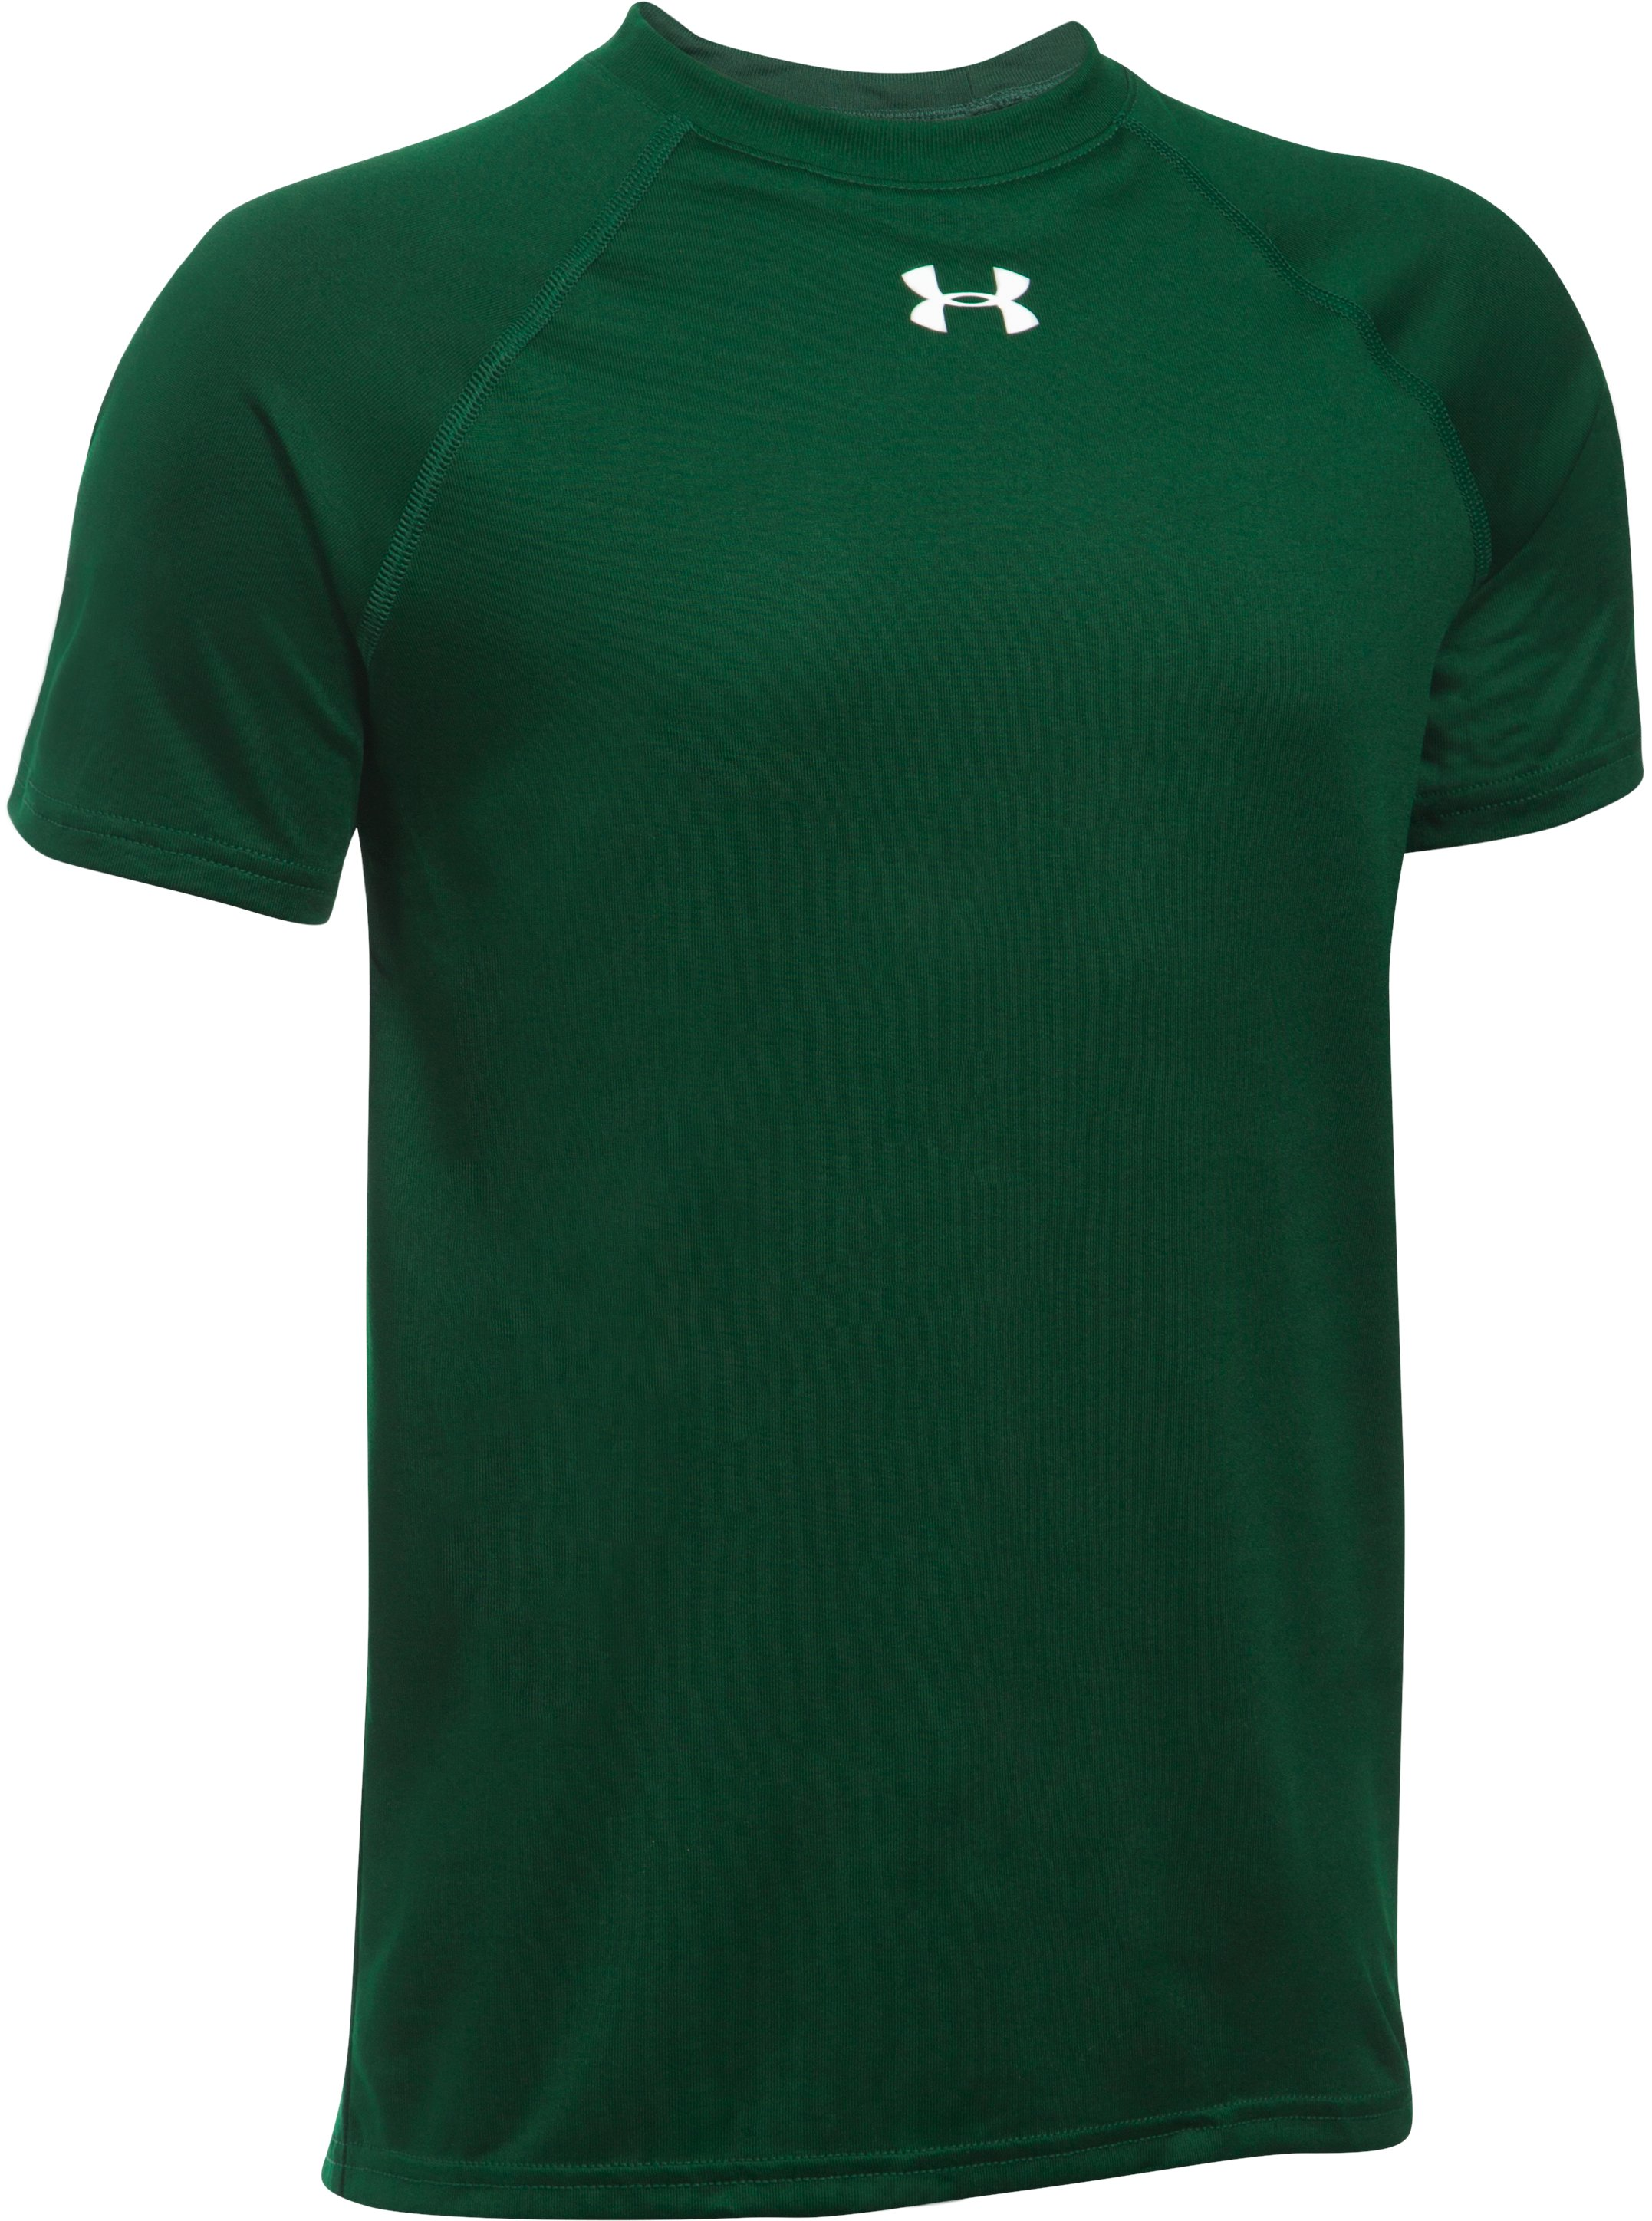 Boys' UA Locker Short Sleeve T-Shirt, Forest Green